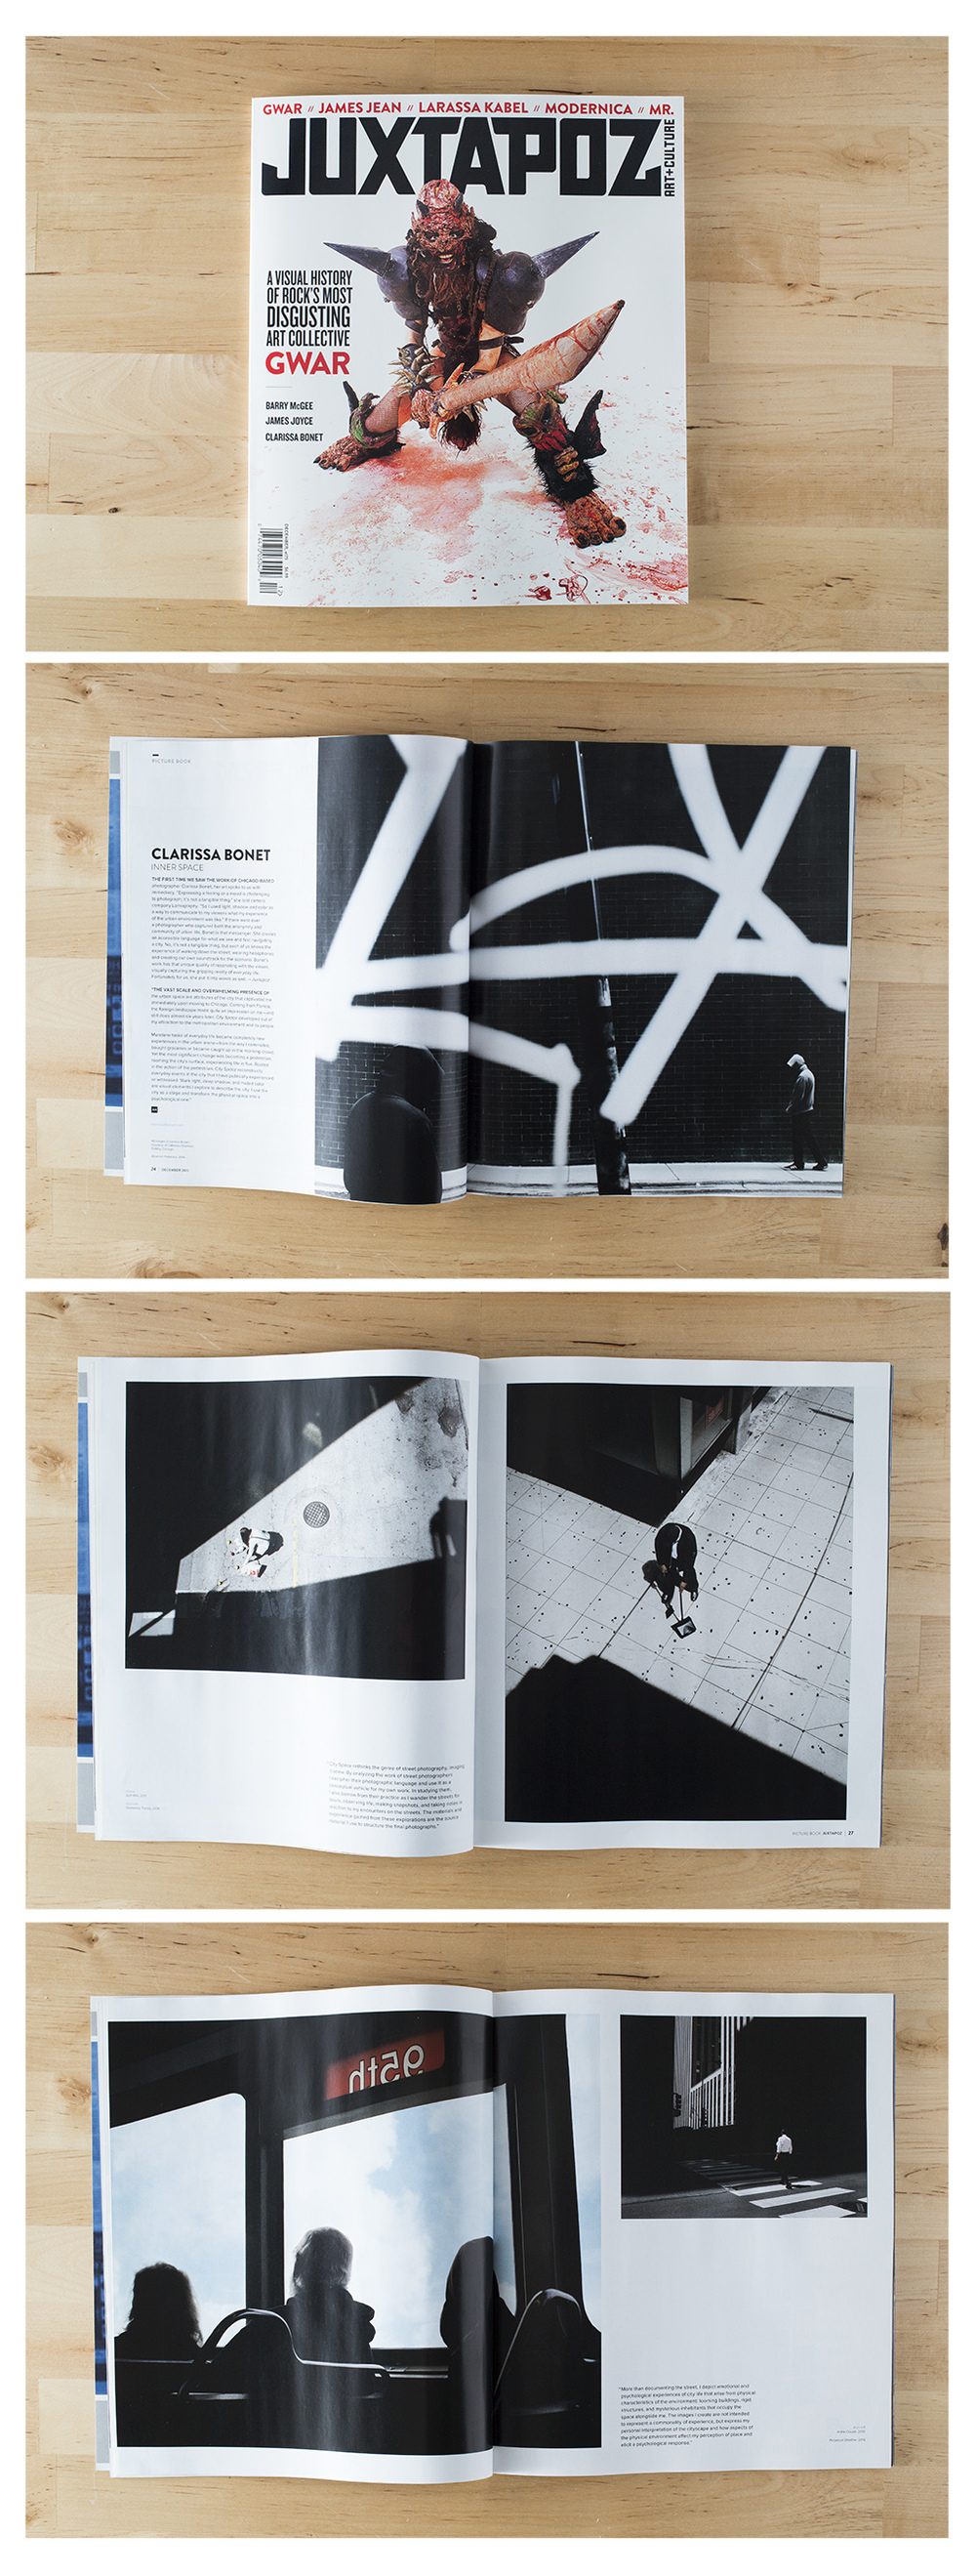 Juxtapoz Magazine December Issue